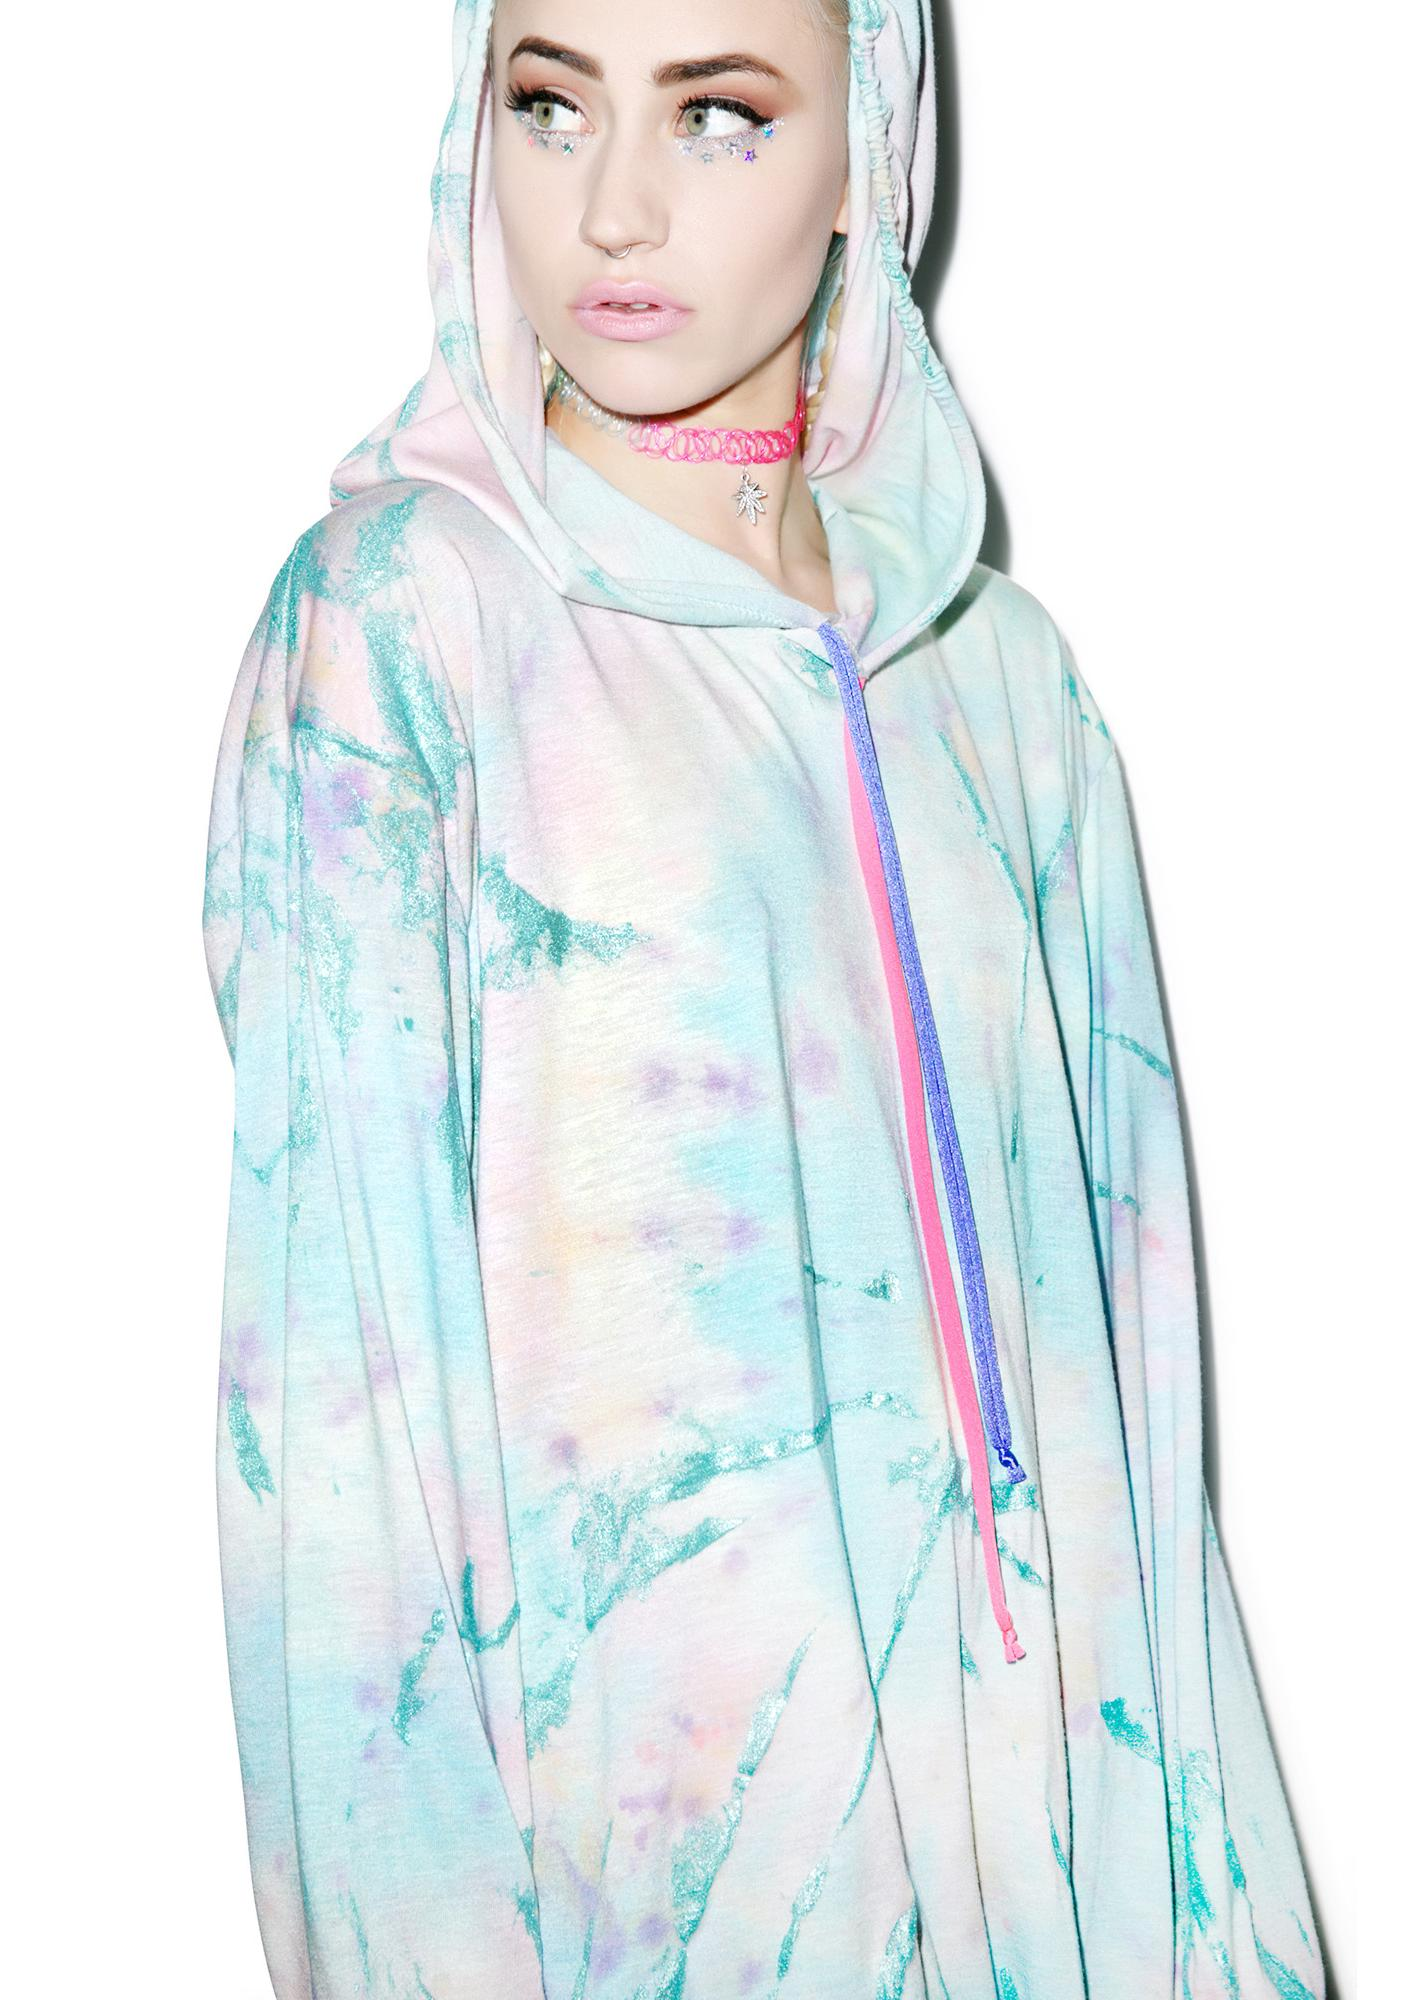 Mamadoux Metallic Tie Dye Hooded Shirt